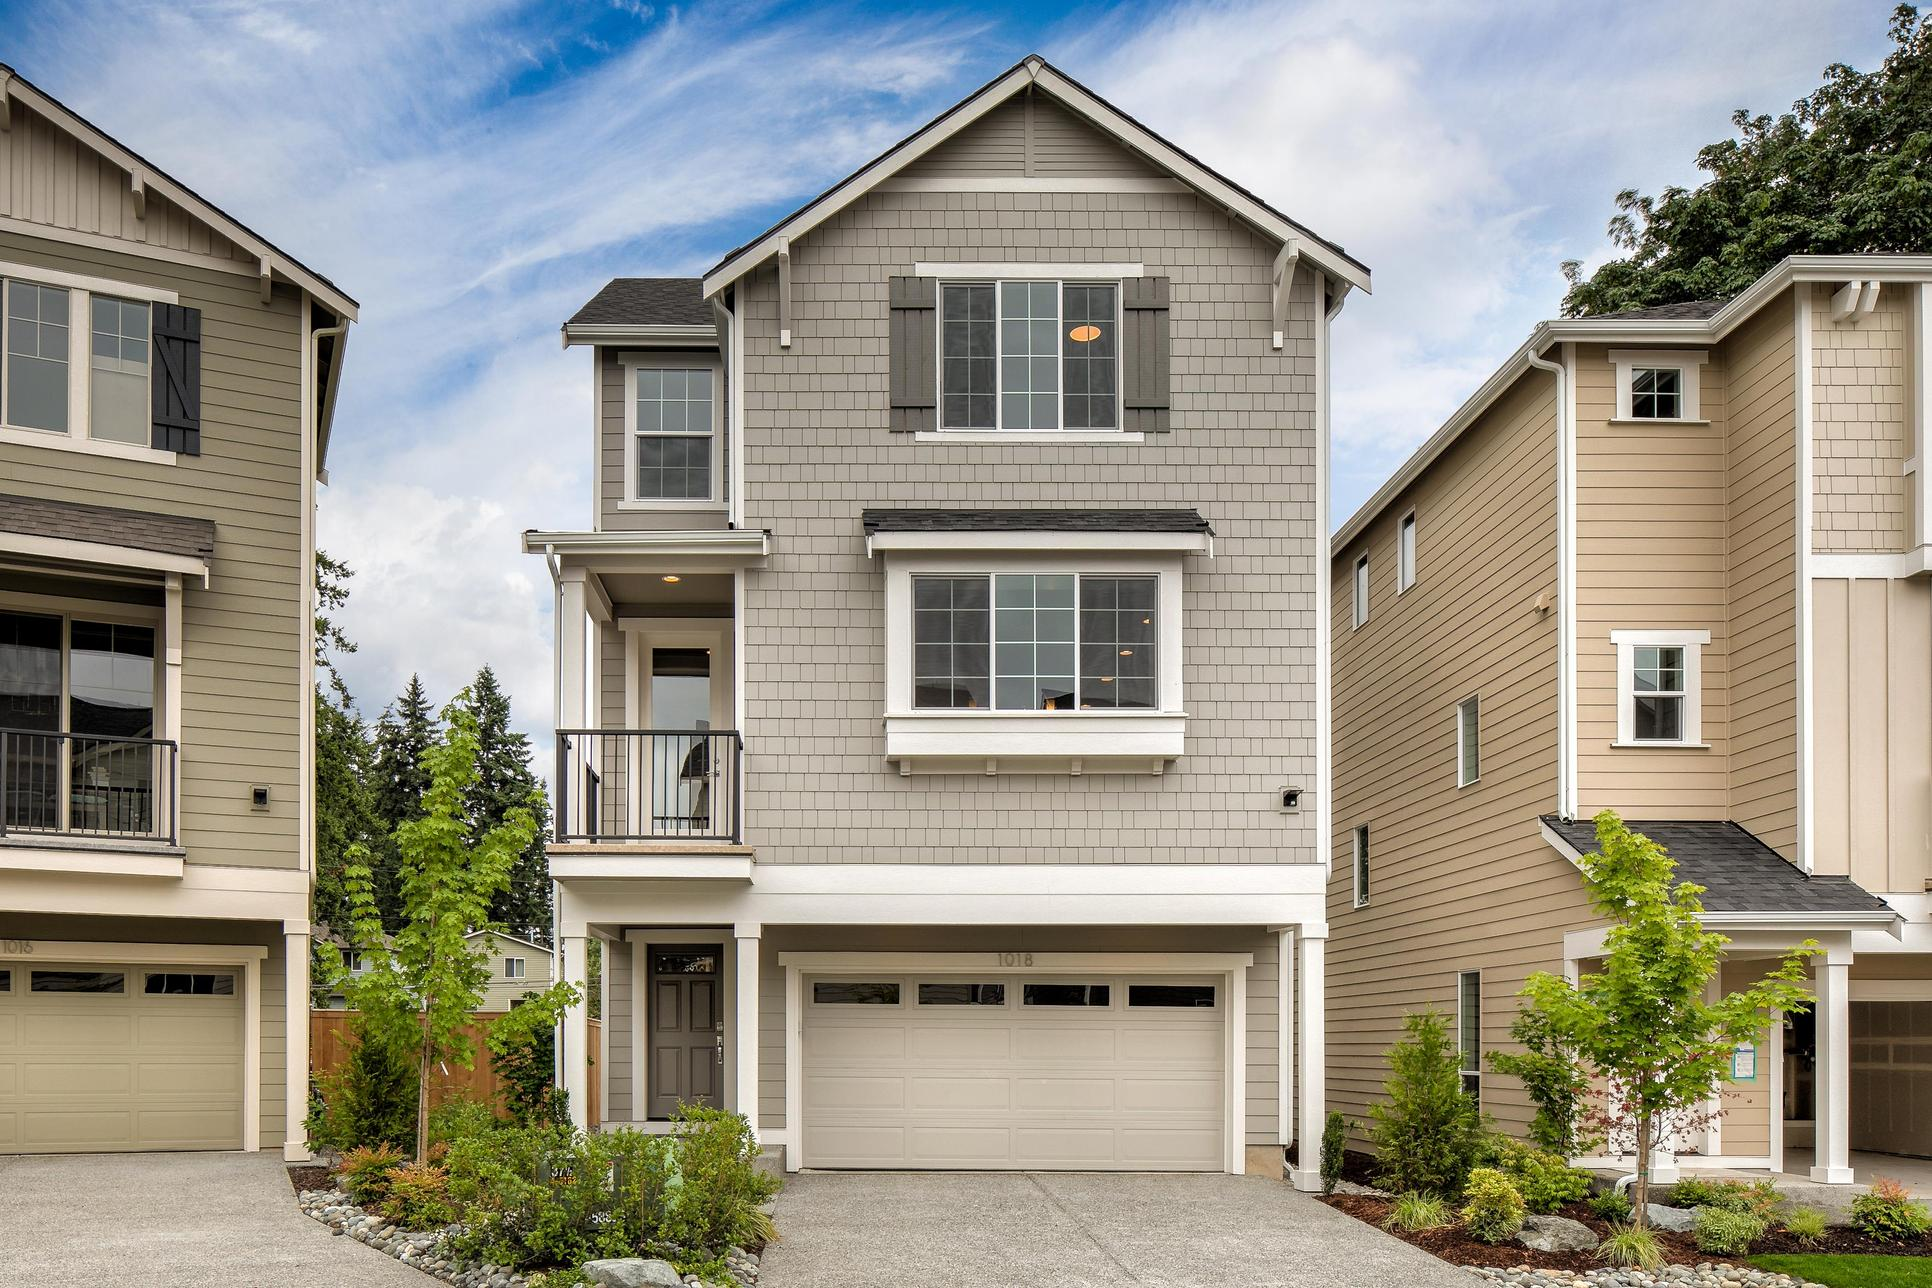 Exterior:Move-in ready in Lynnwood